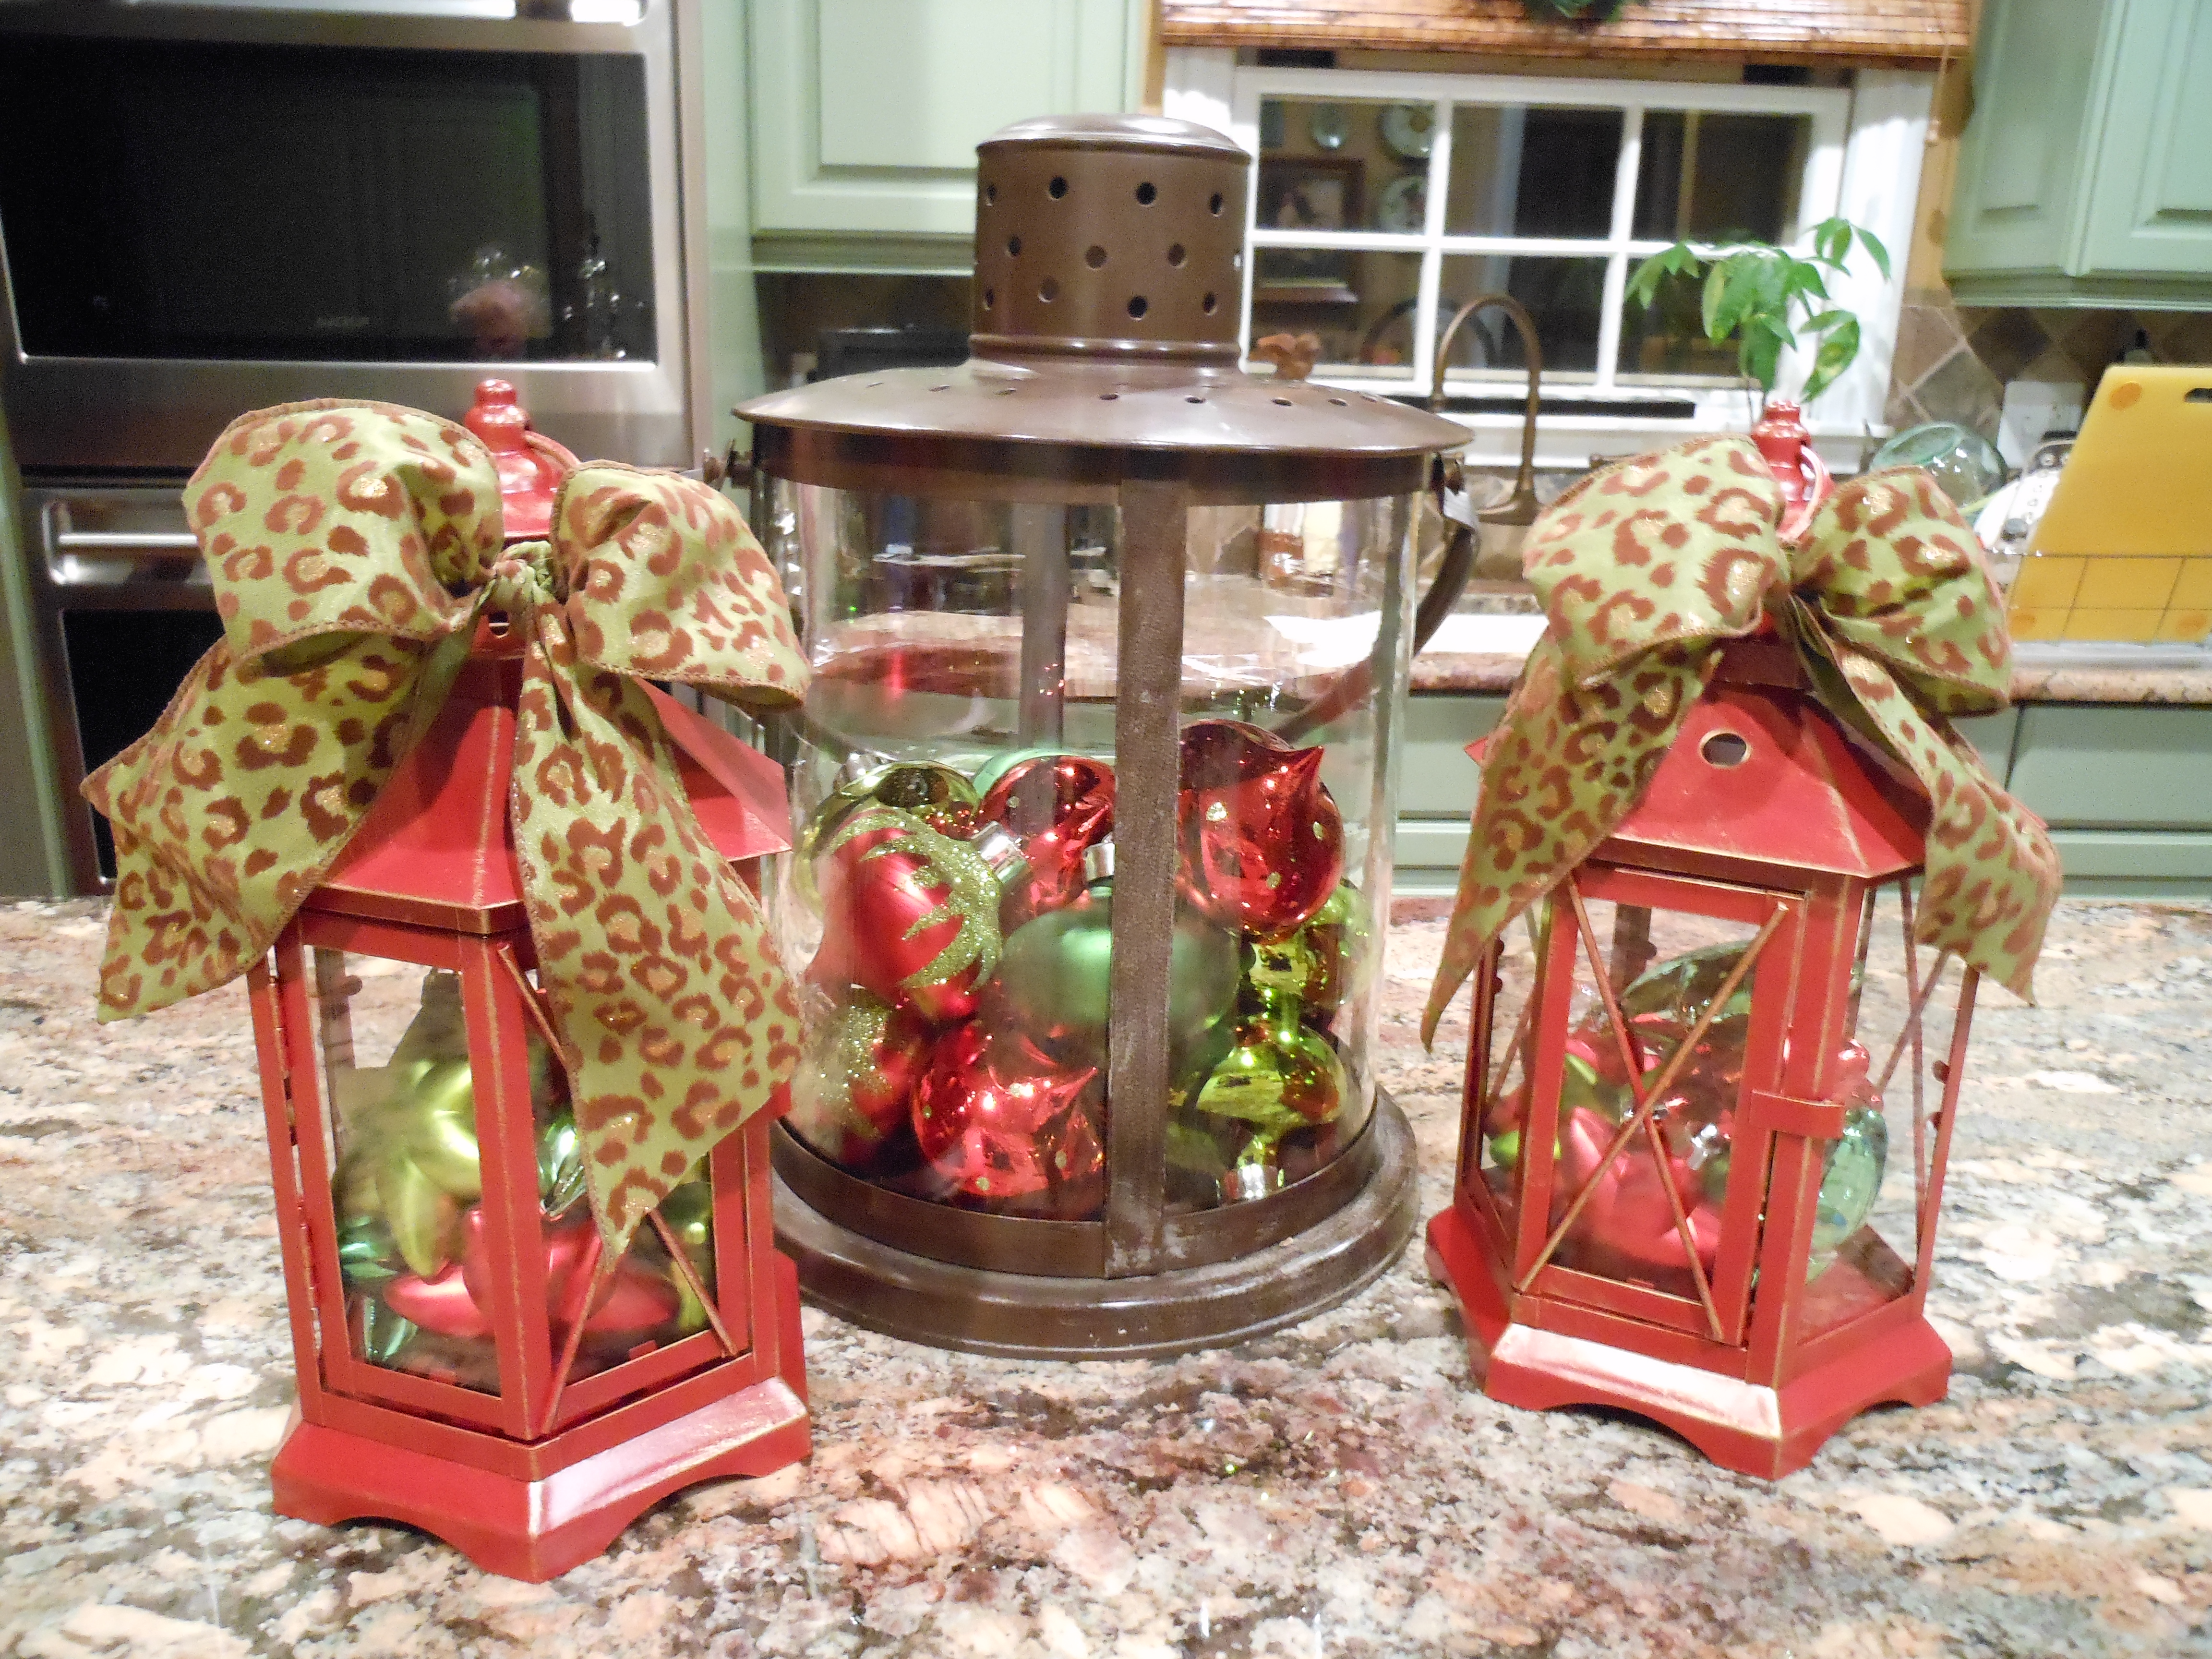 Outdoor Christmas Urns http://moreismoremom.wordpress.com/2011/12/06/beautiful-christmas-urns-and-outdoor-decor/